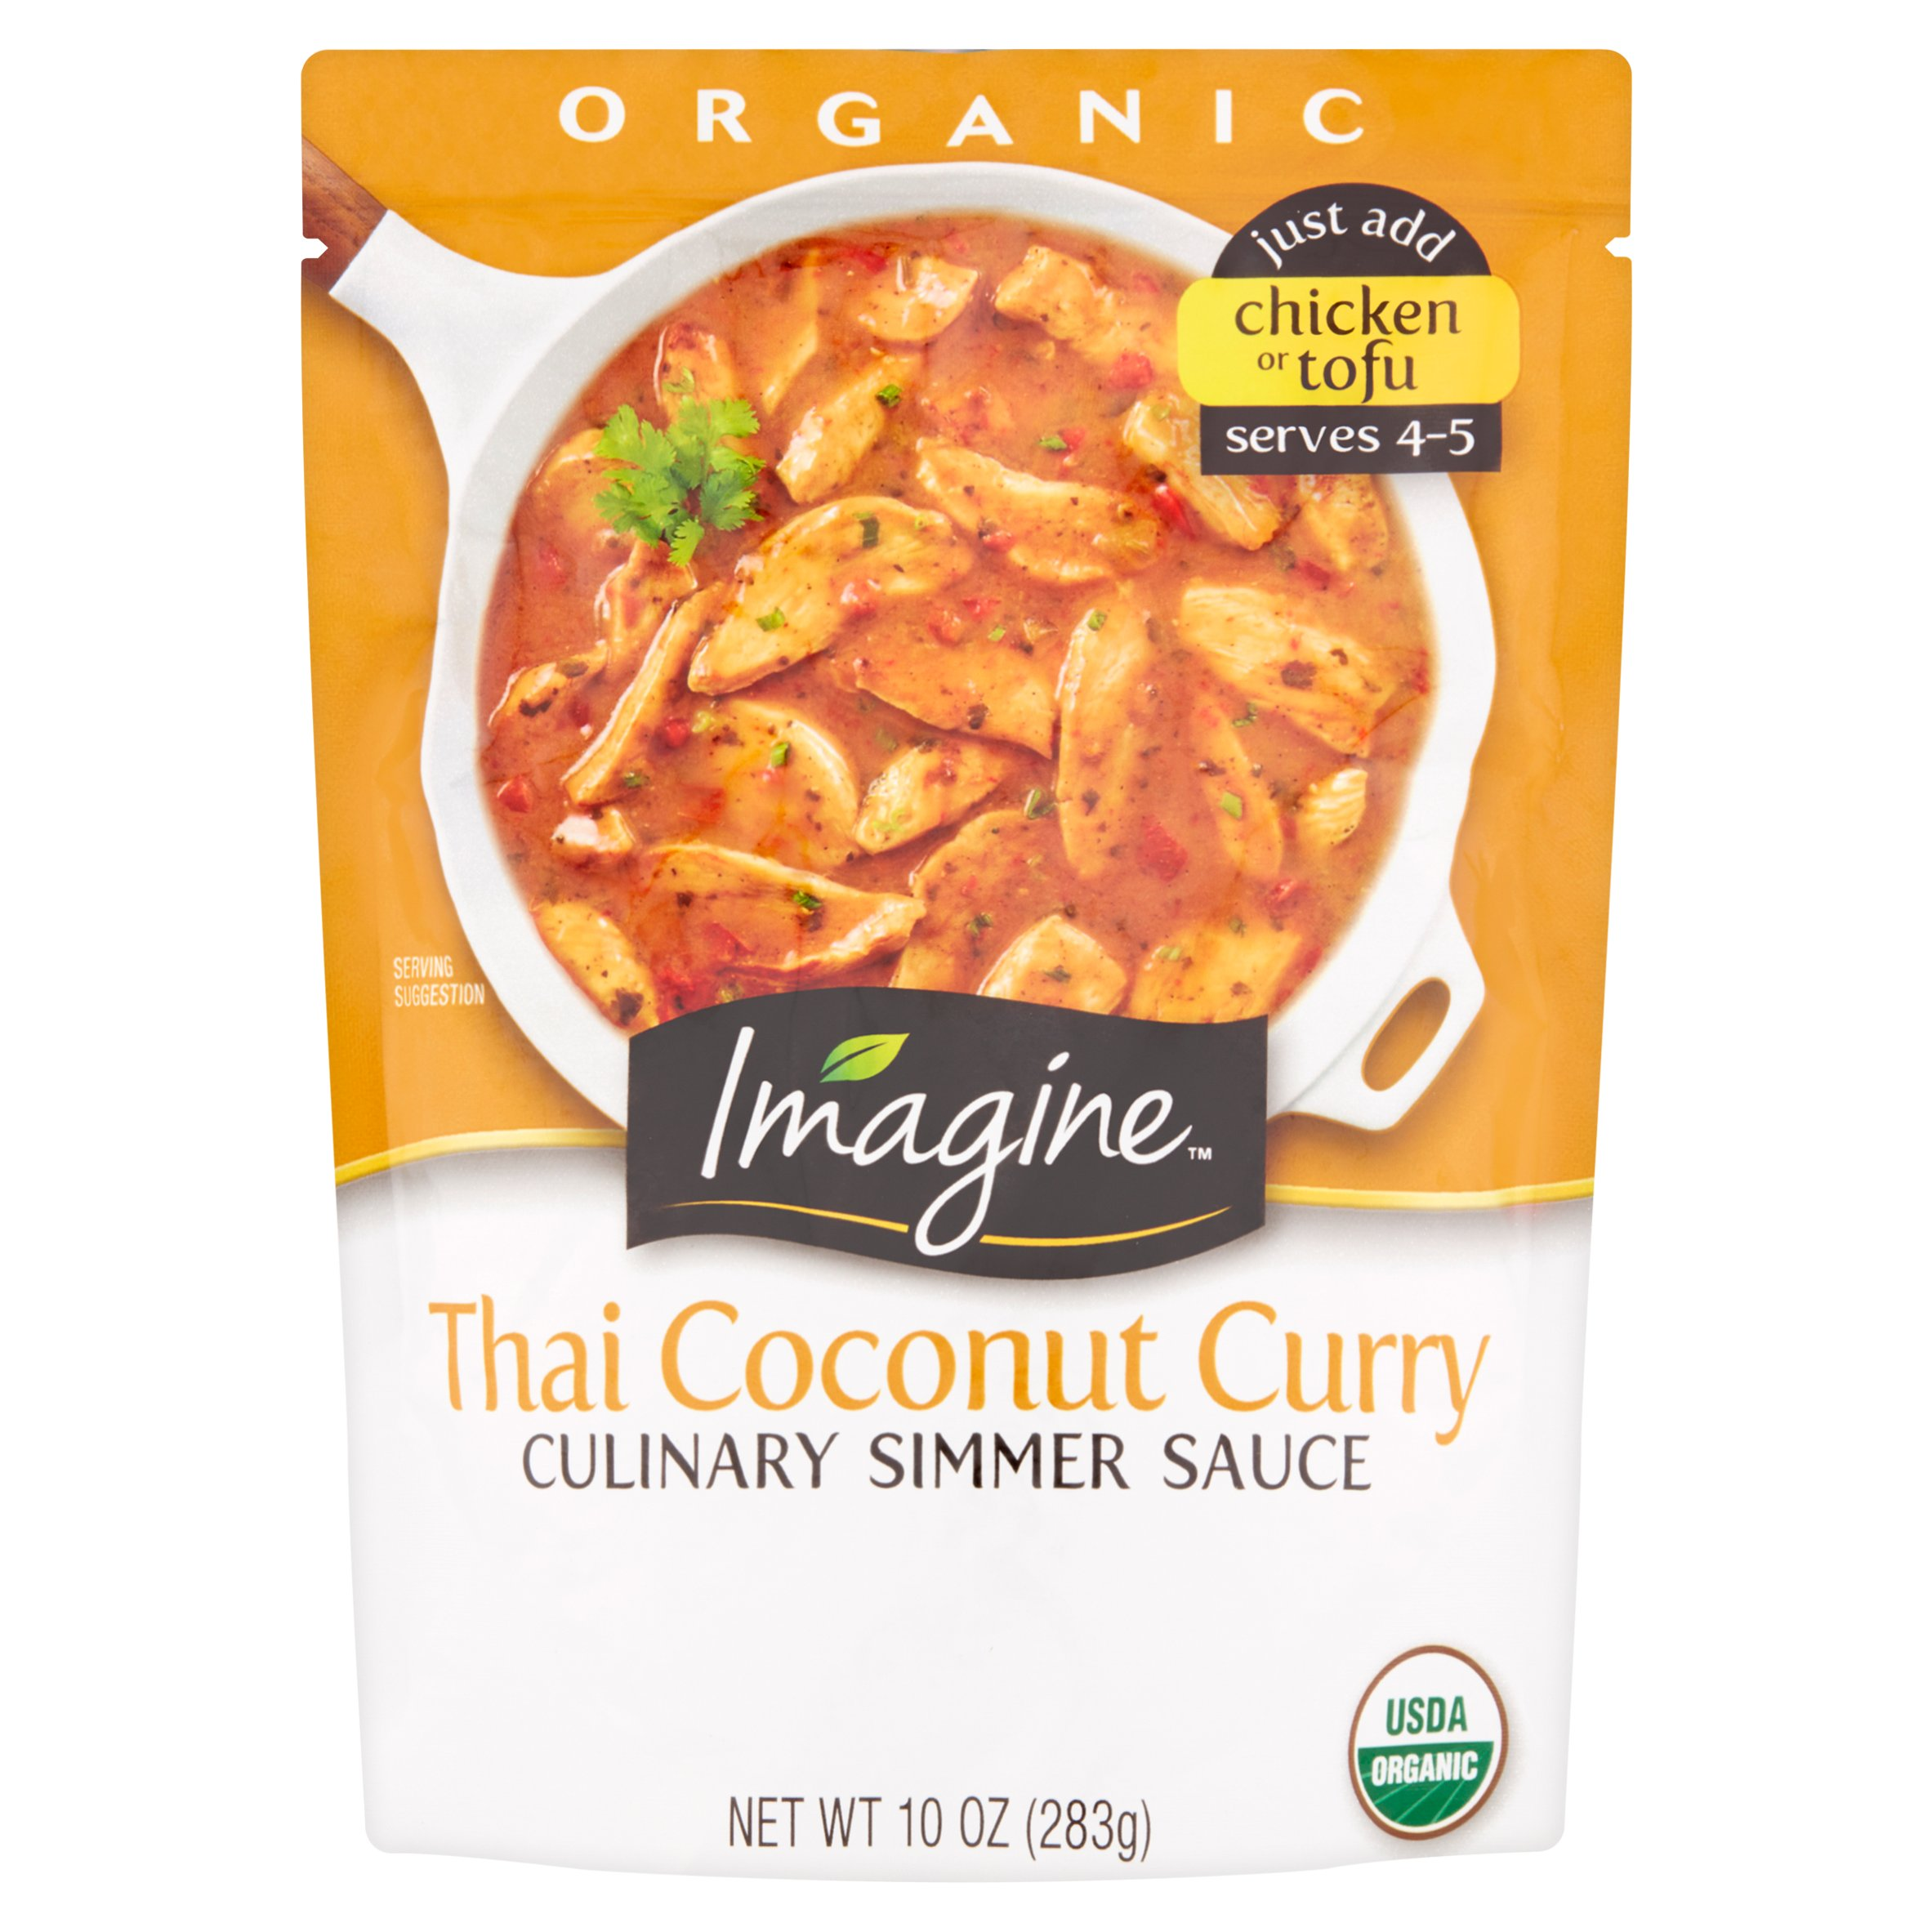 Imagine Organic Thai Coconut Curry Culinary Simmer Sauce, 10 oz, 6 pack